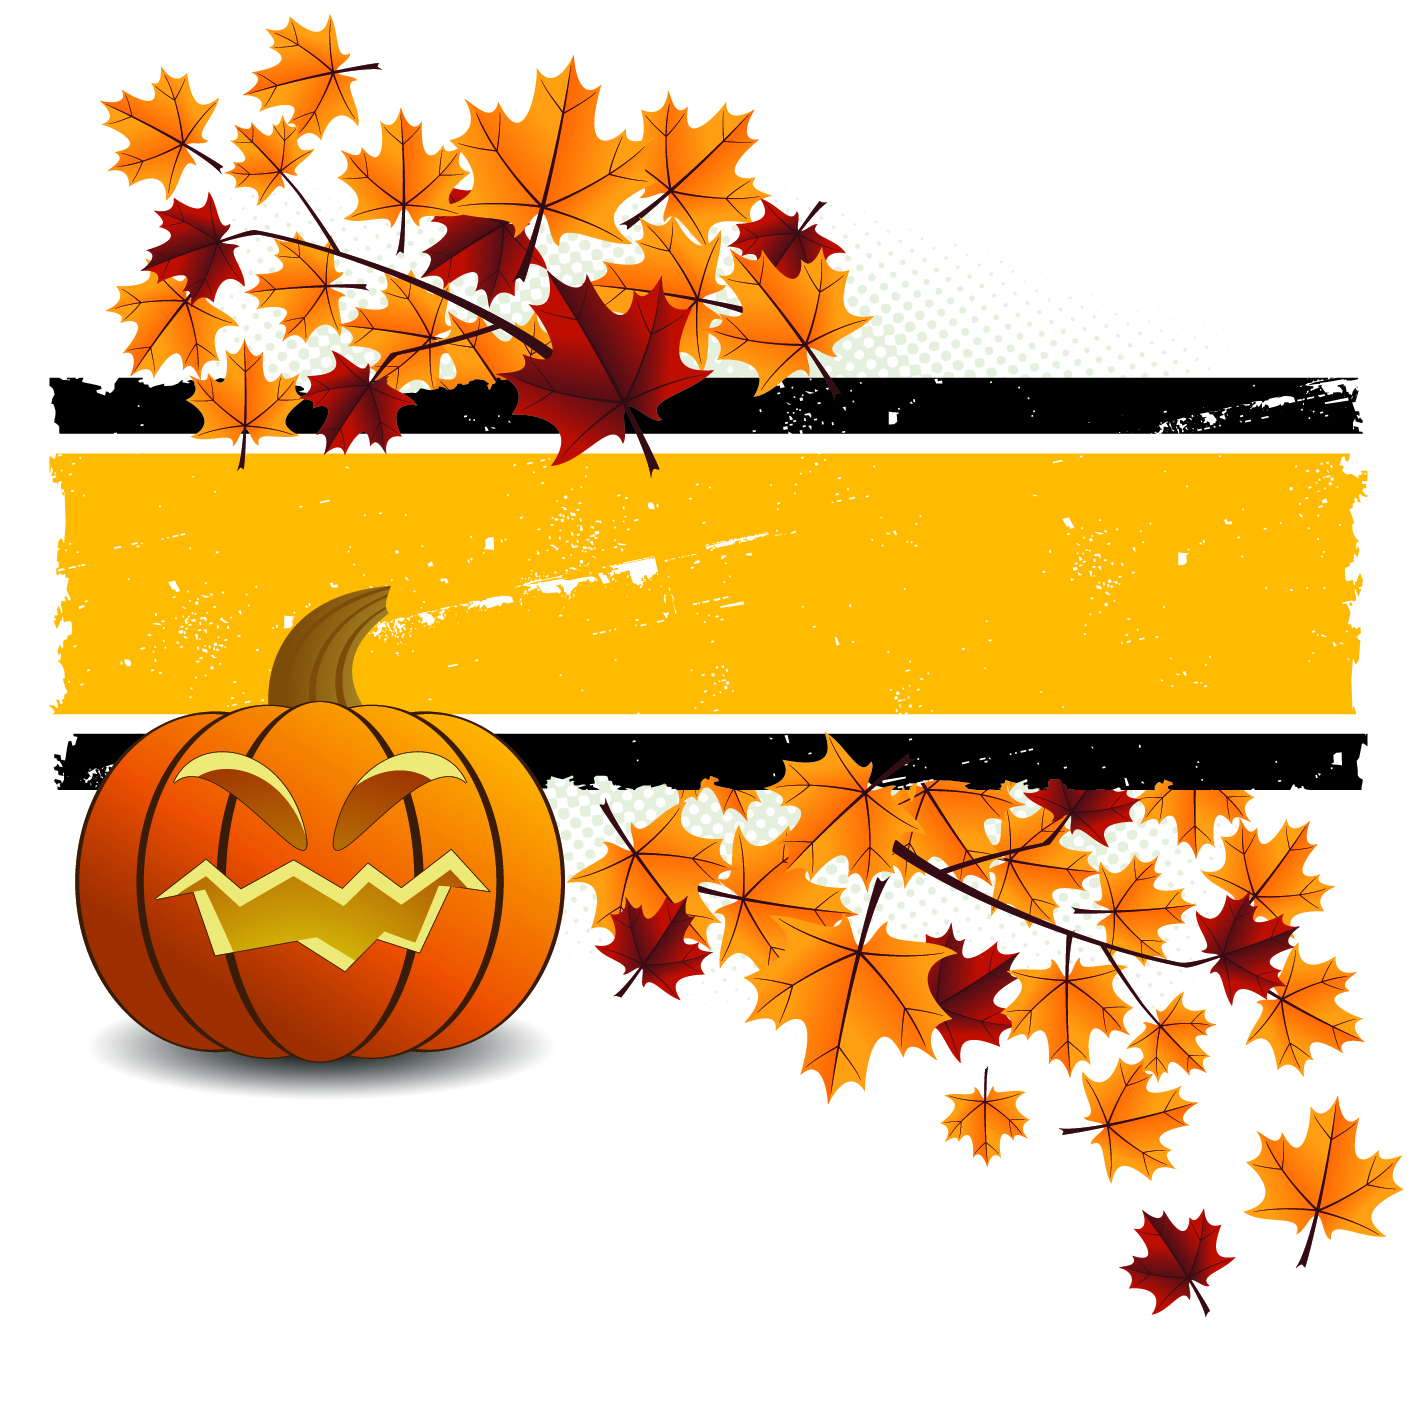 spooky halloween clipart at getdrawings com free for personal use